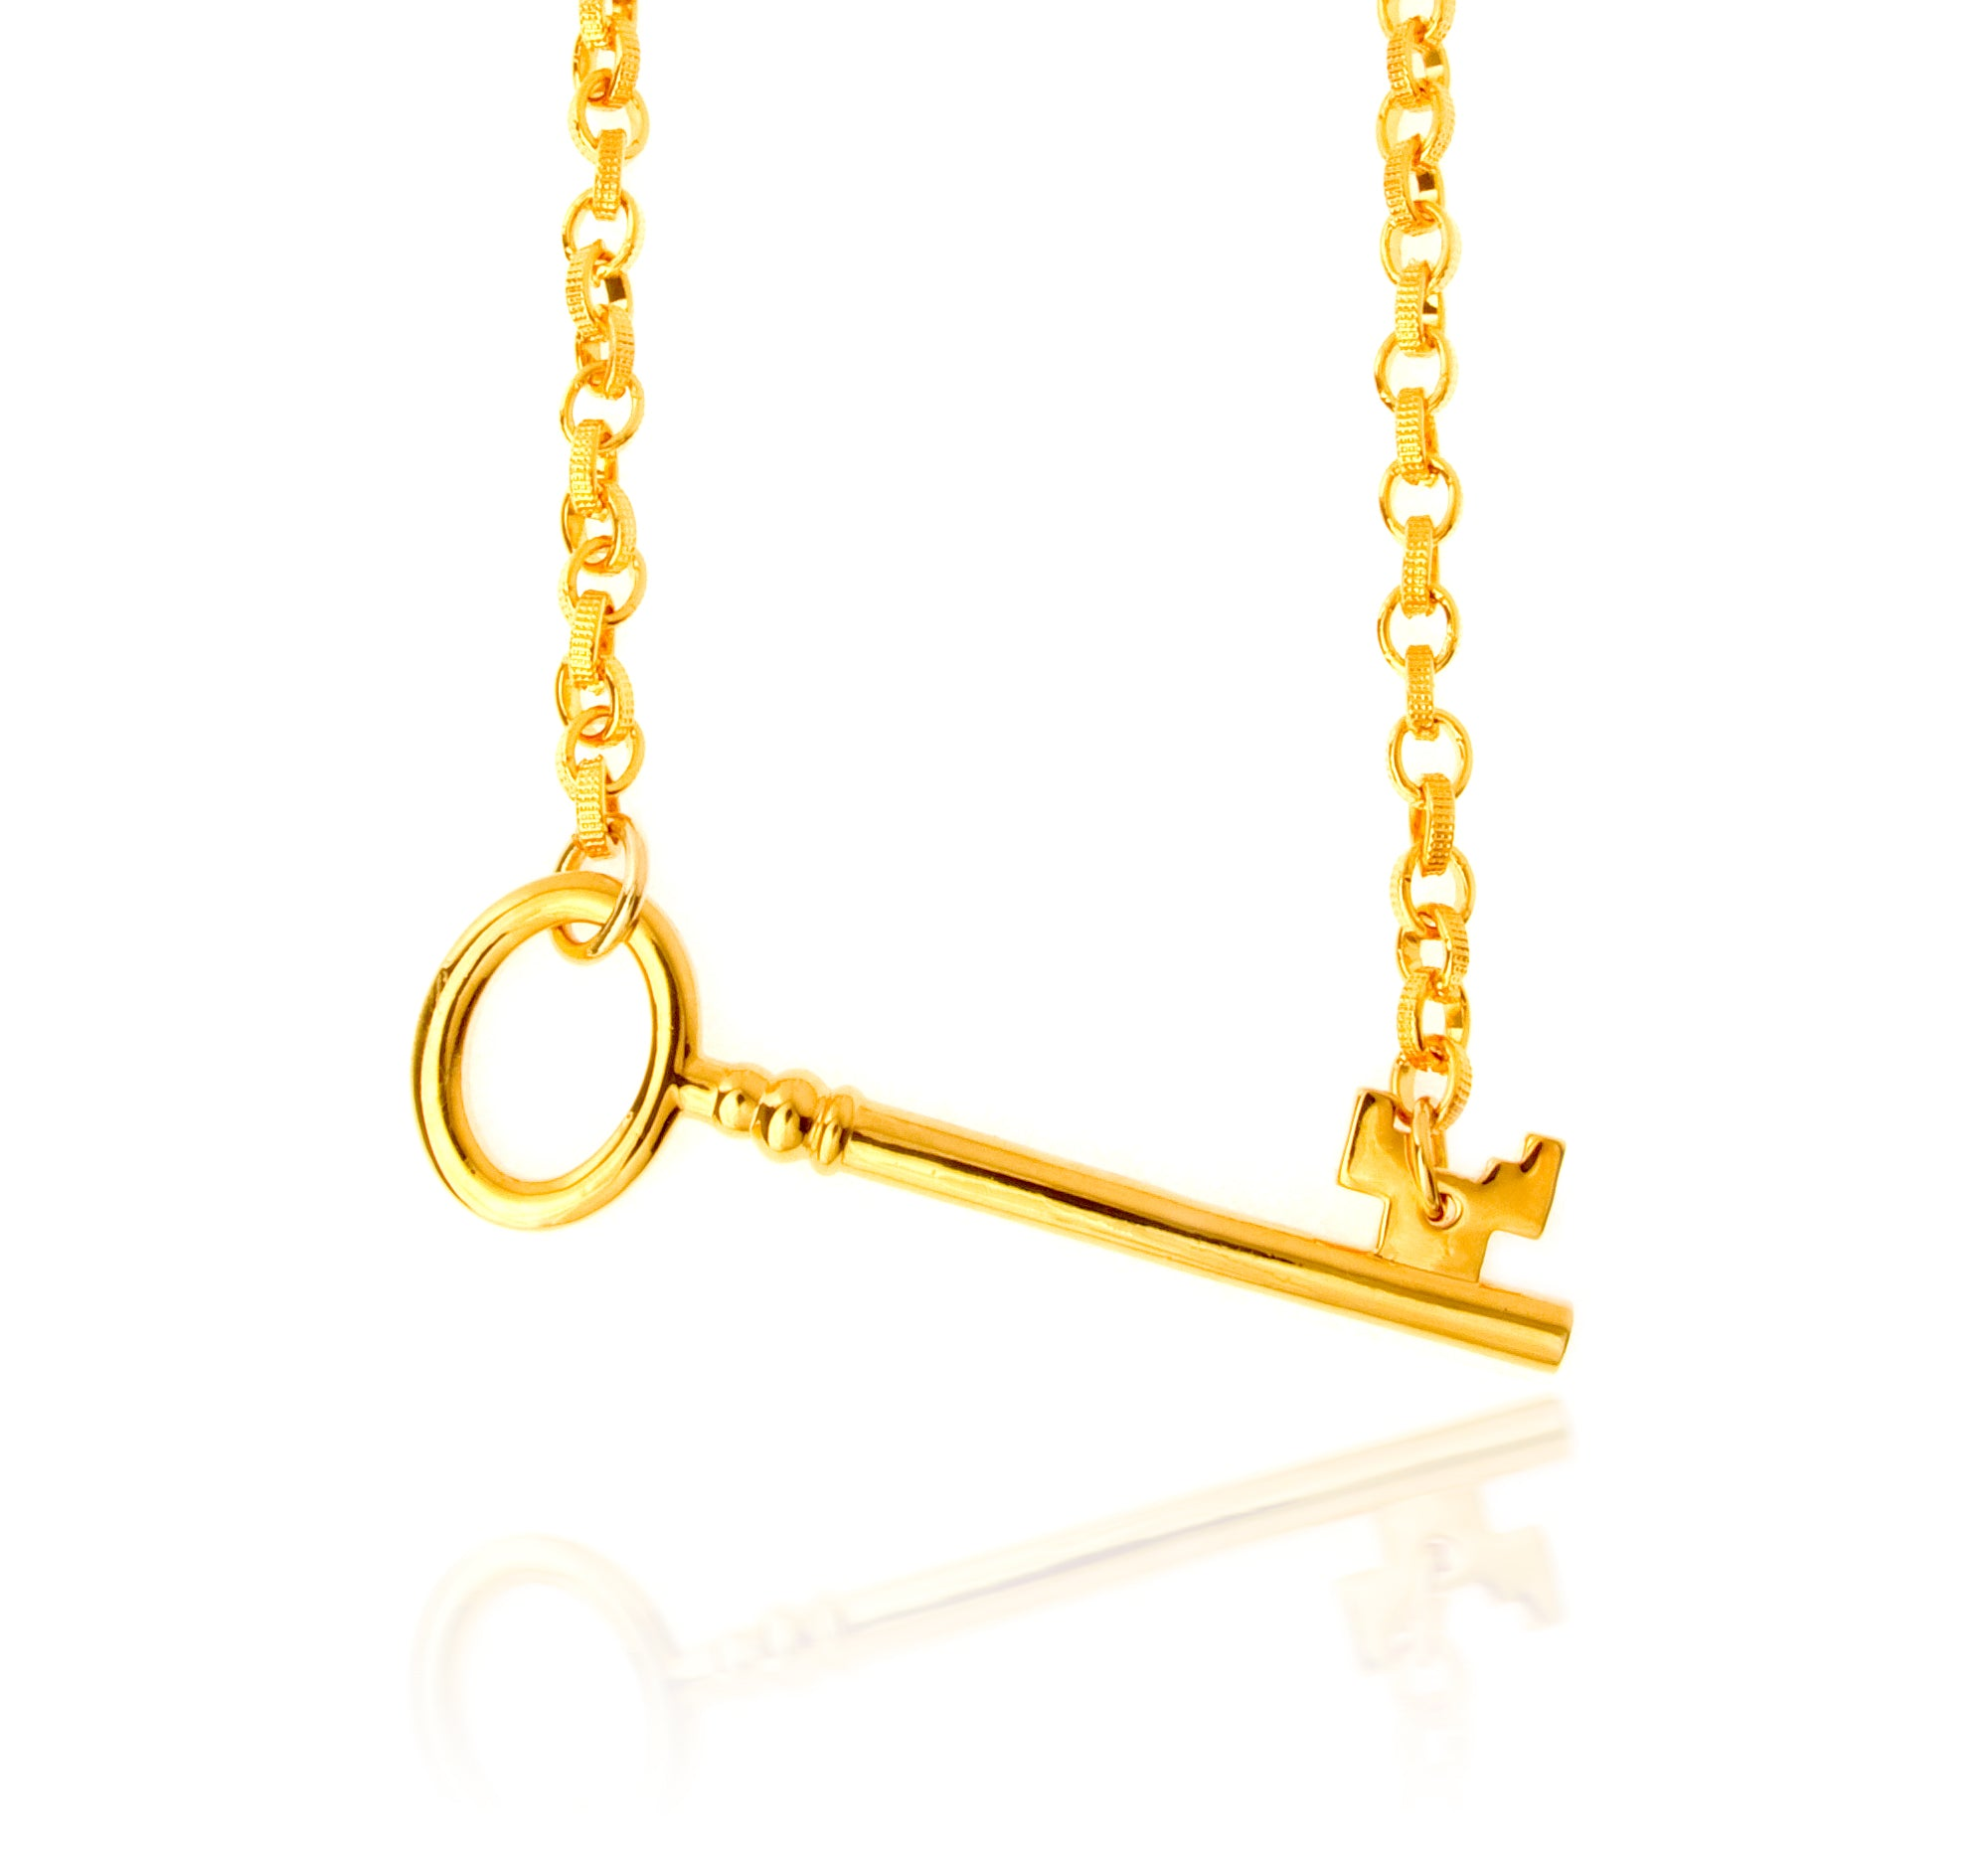 Disney Gold Key Necklace